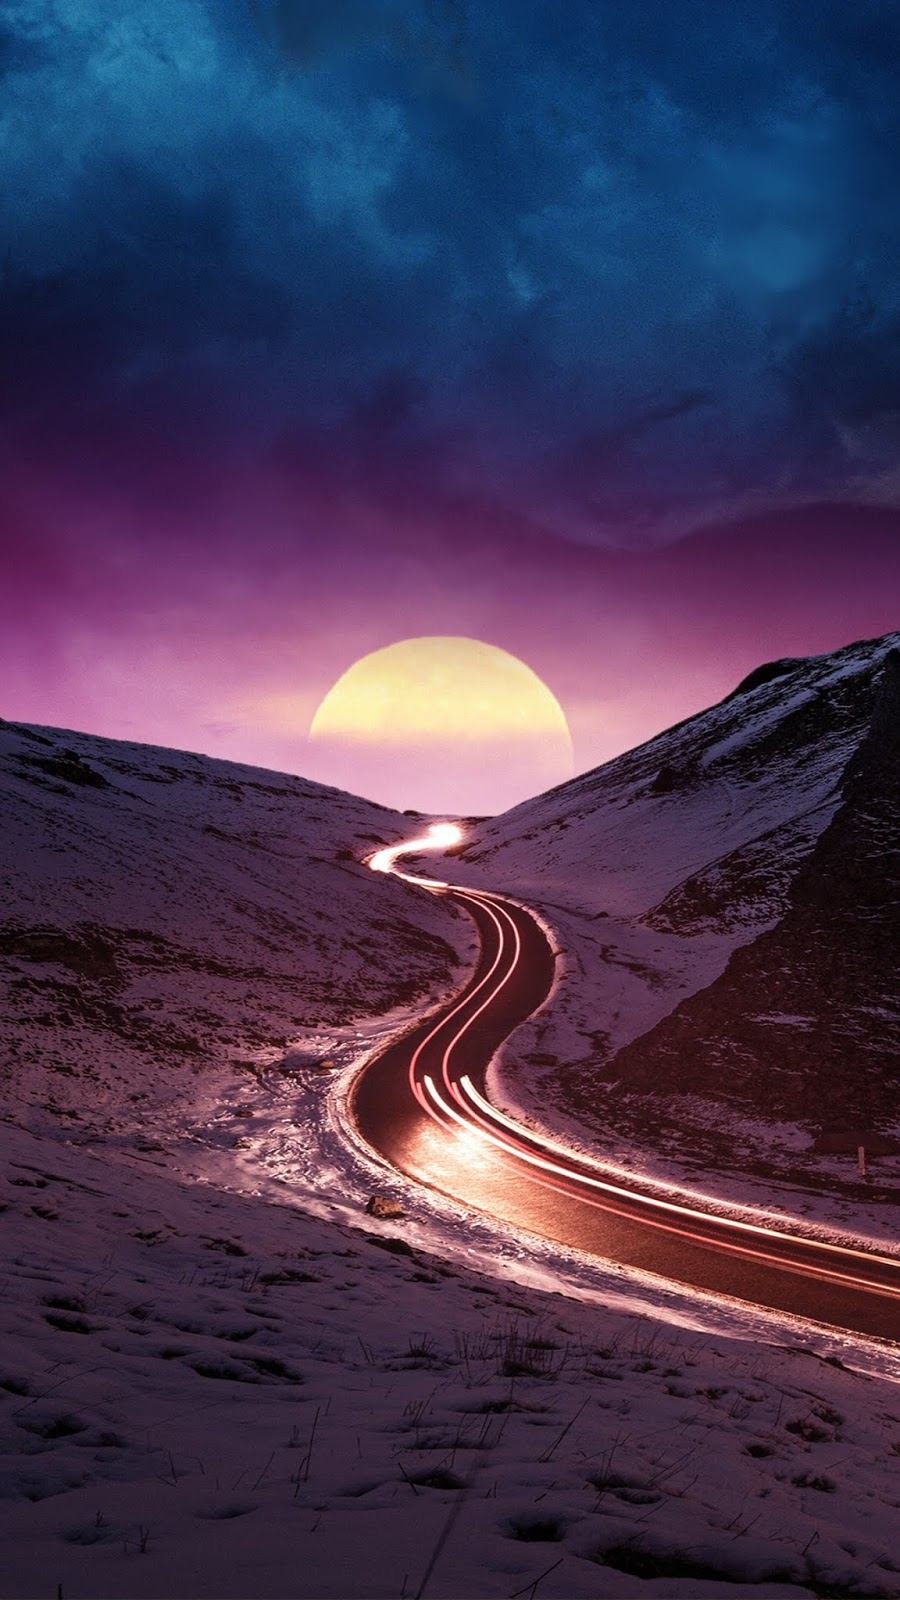 Road in the purple night